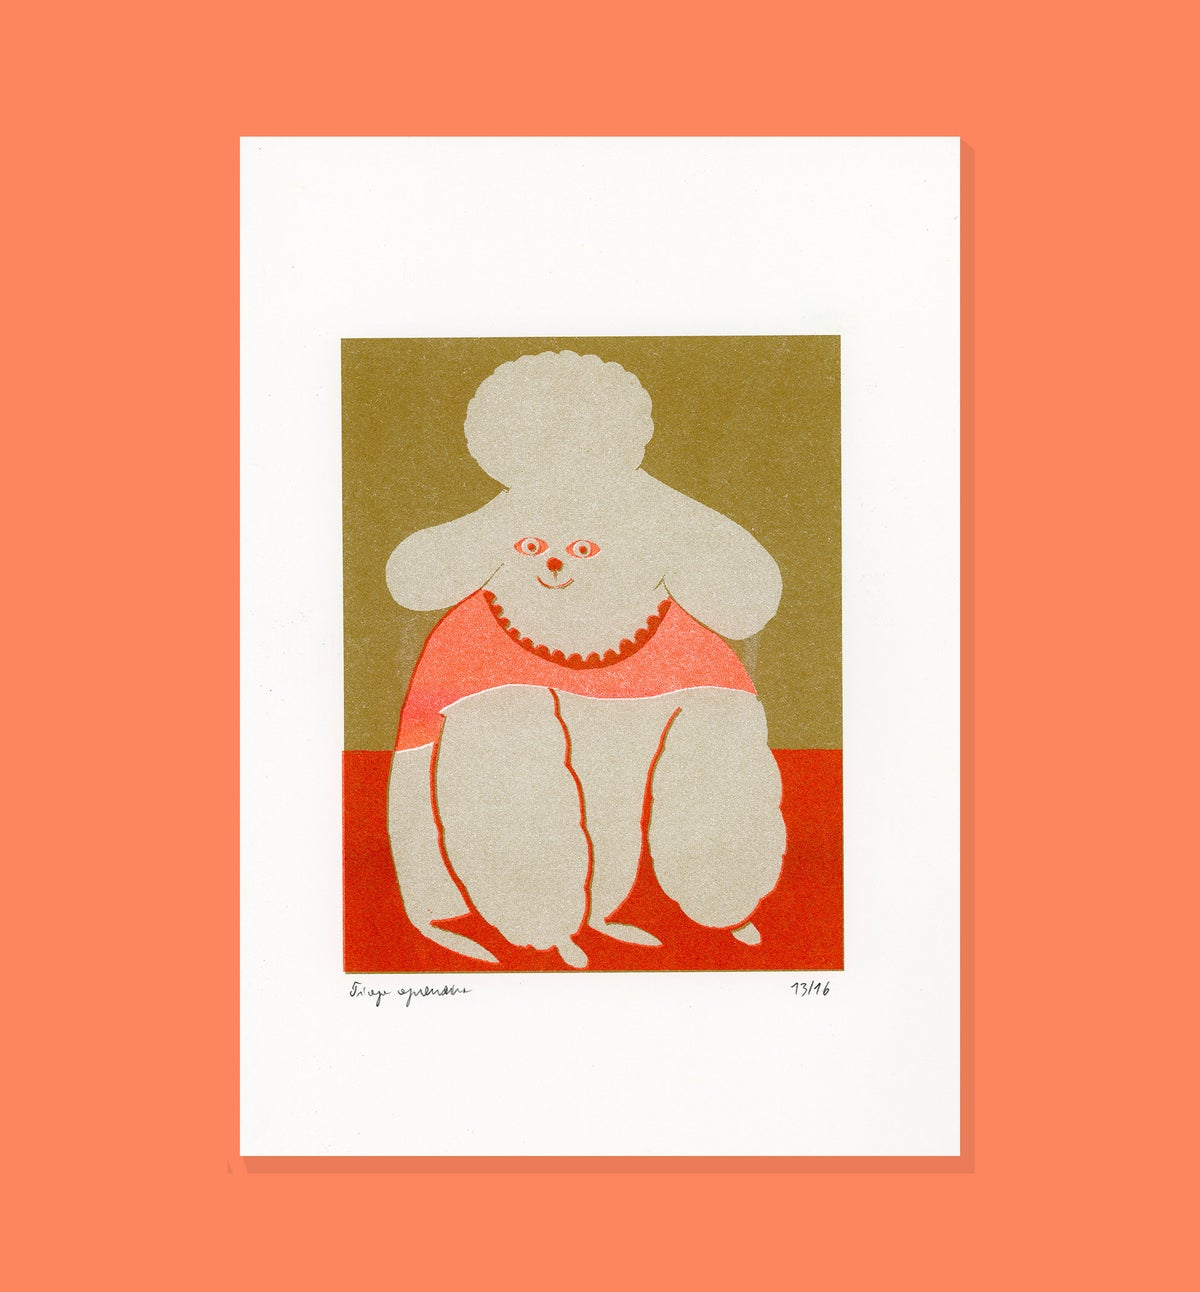 Image of Botero